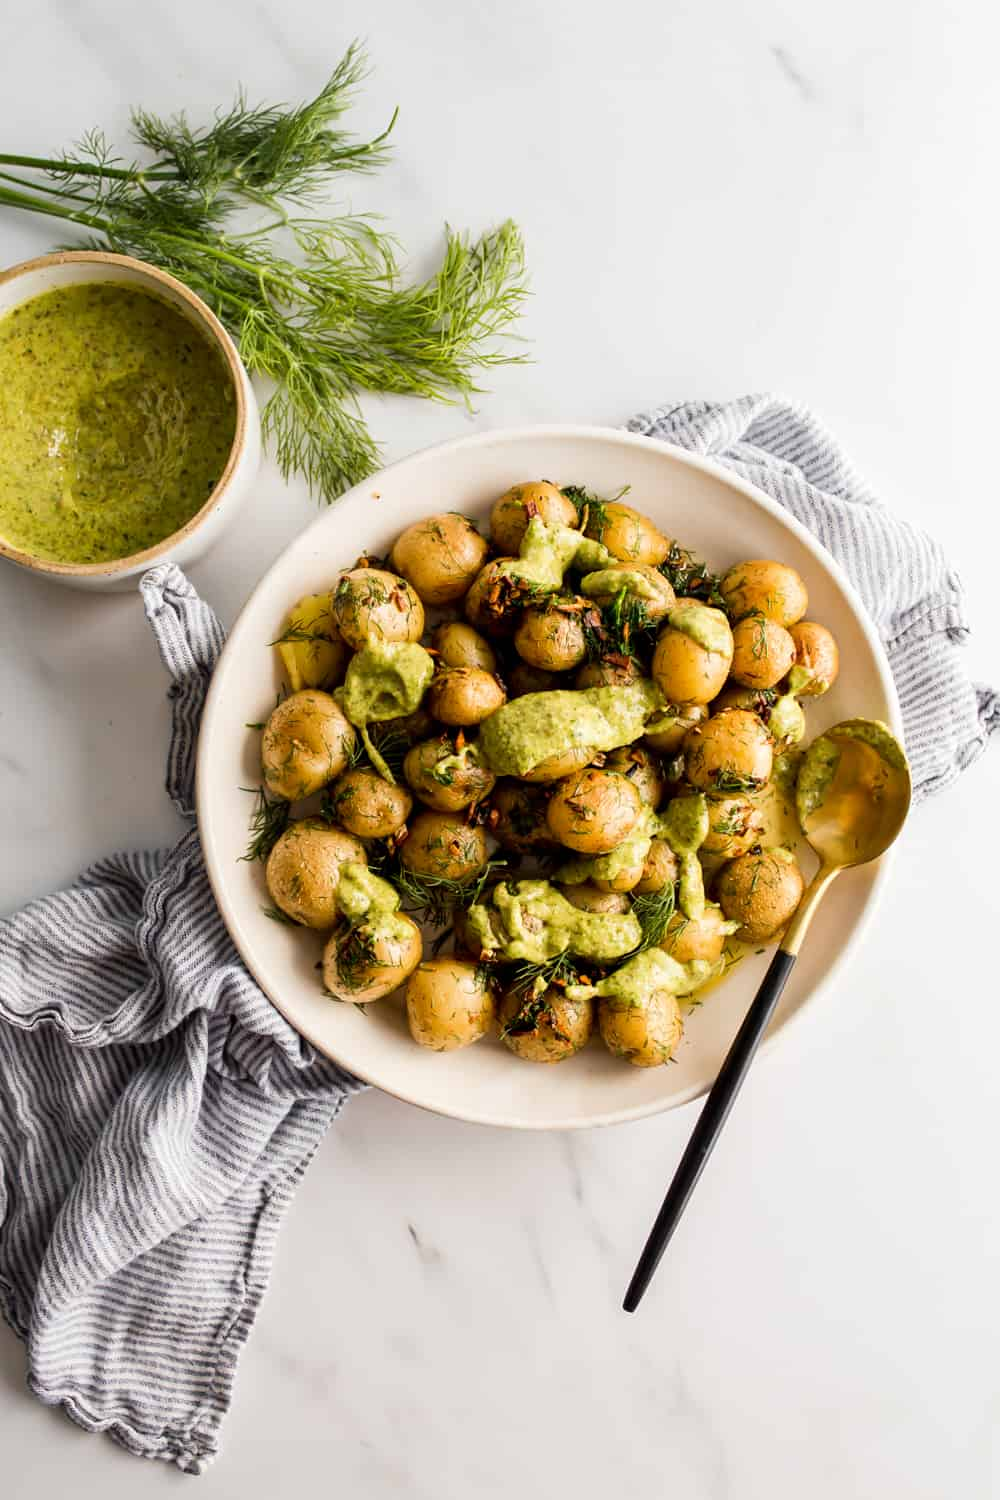 Boiled Baby Potatoes With Garlic Butter And Dill in a white bowl, topped with green tarragon sauce